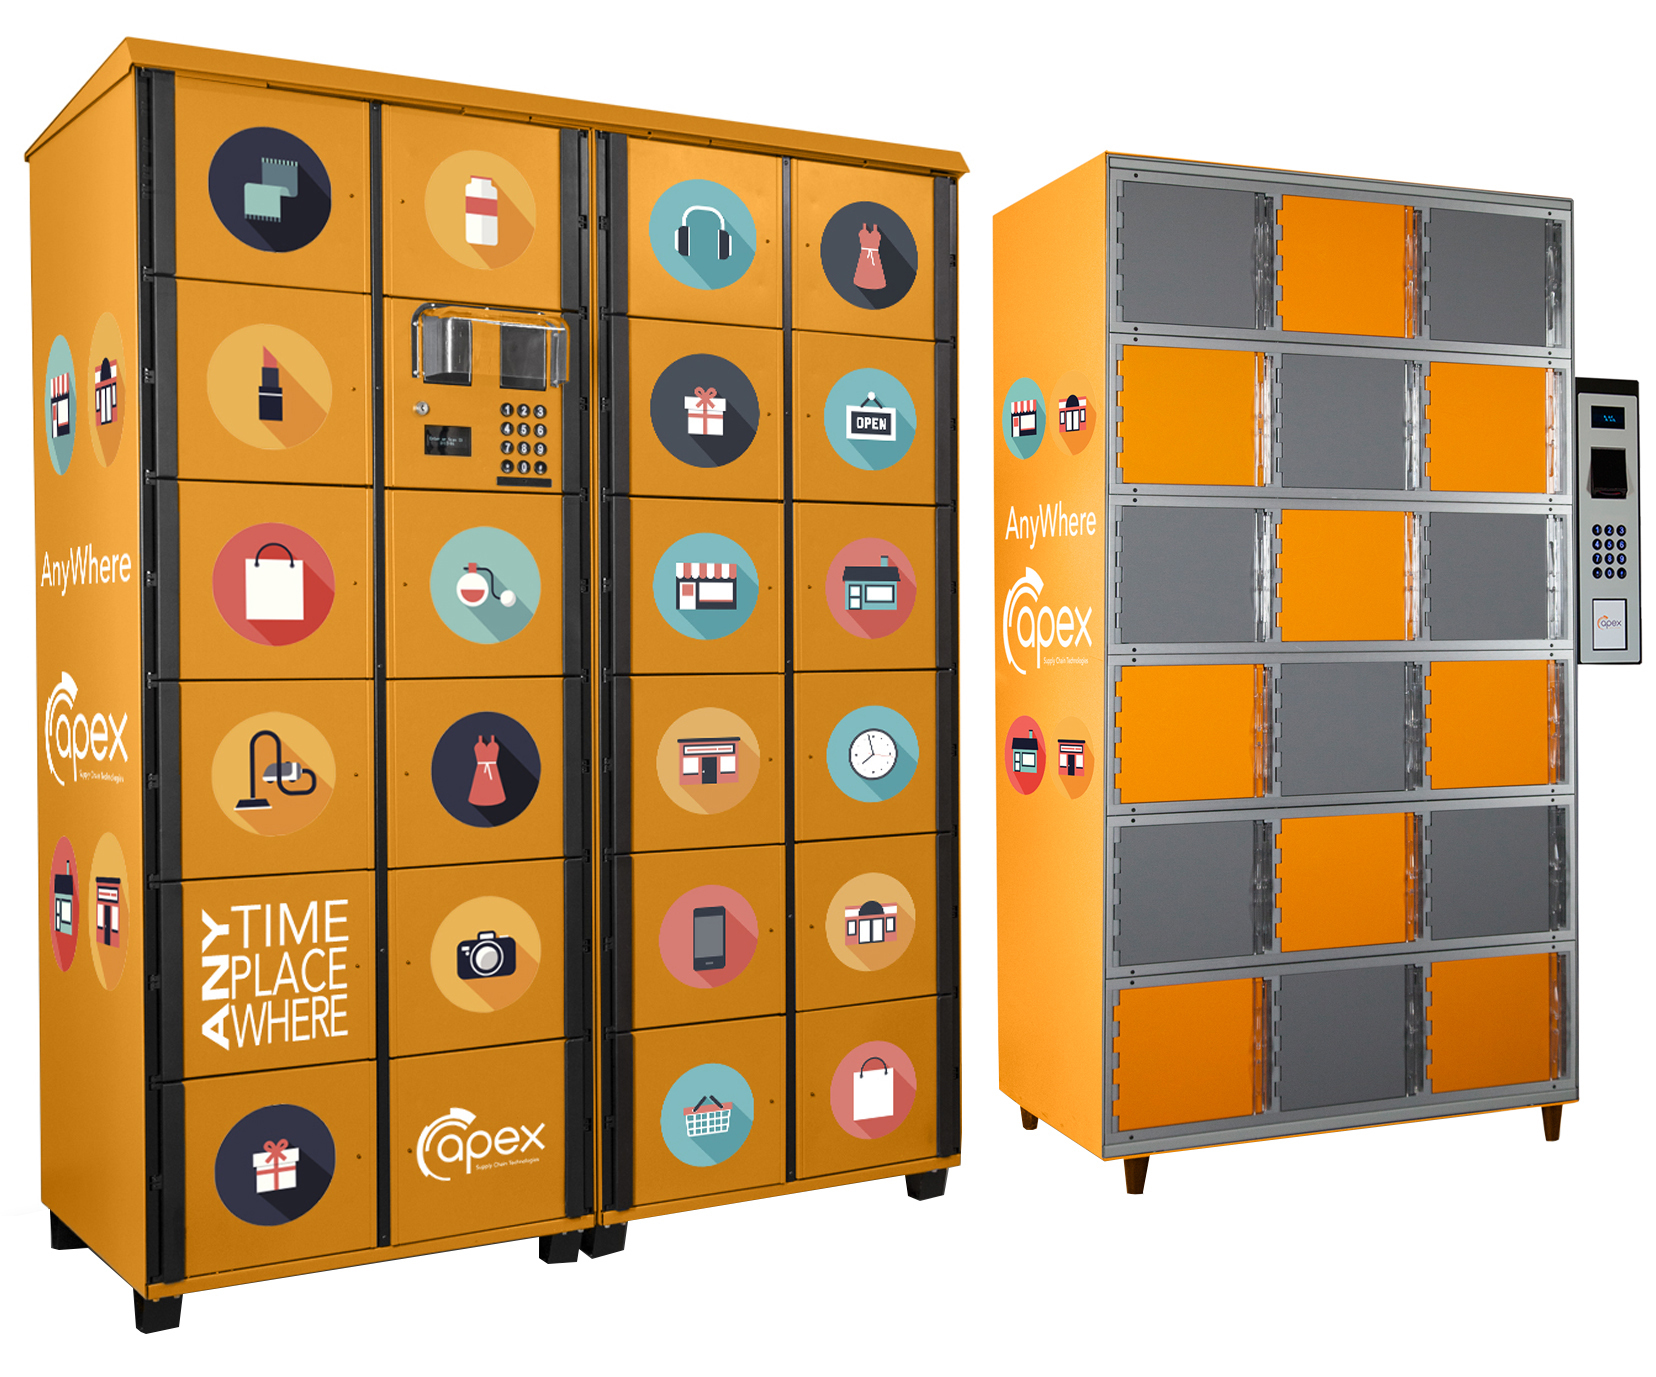 Apex Introduces New Self Serve Locker Applications For